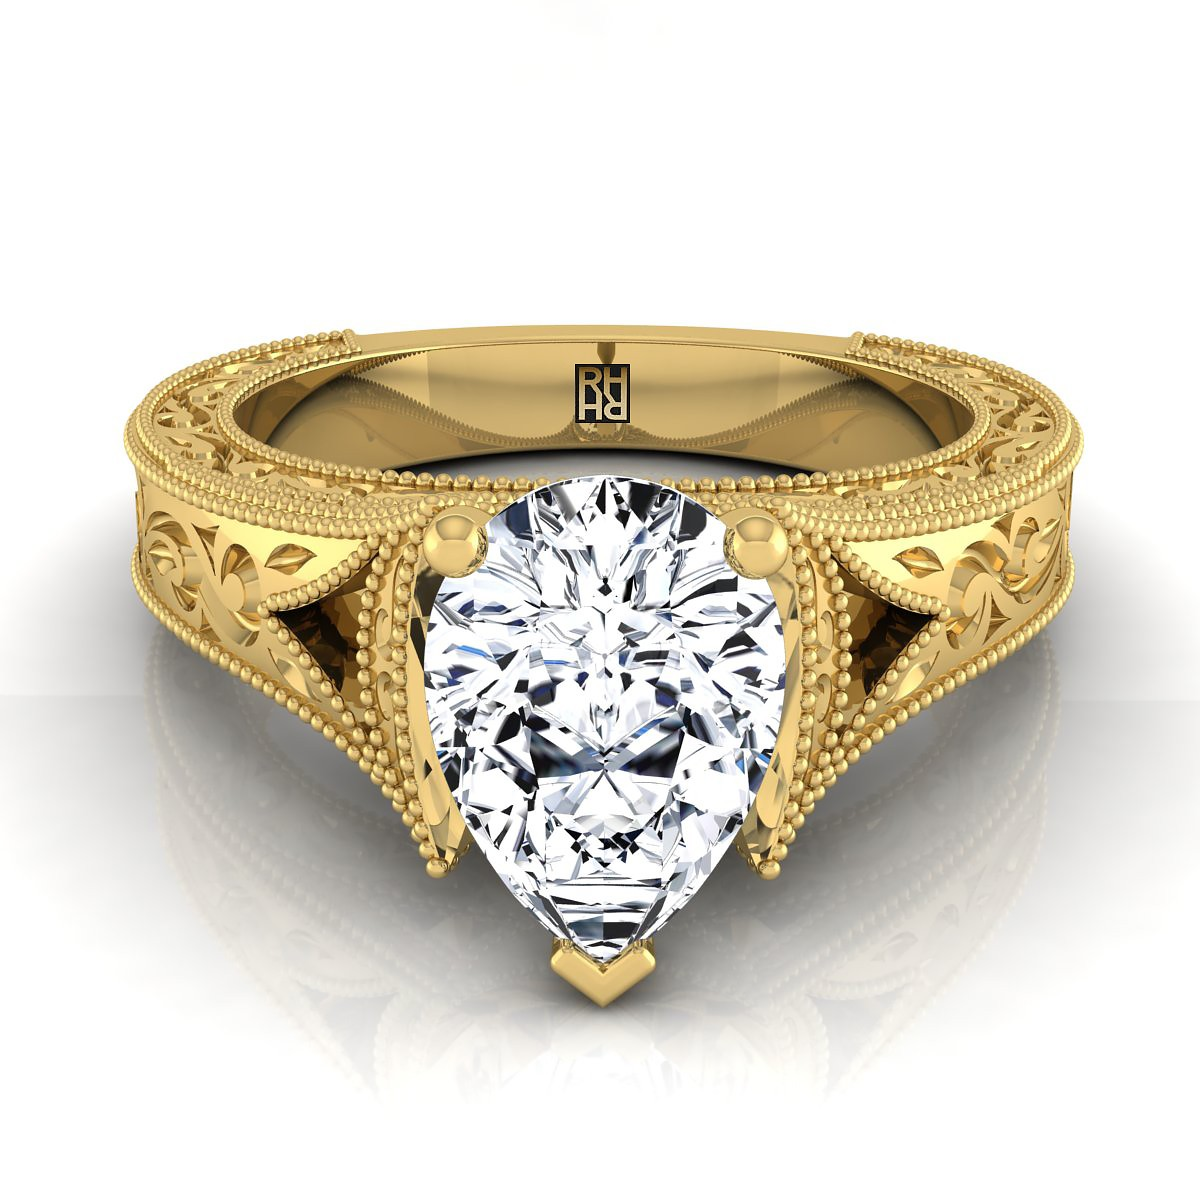 Pear Shape Antique Inspired Engraved Diamond Engagement Ring With Millgrain Finish In 14k Yellow Gold